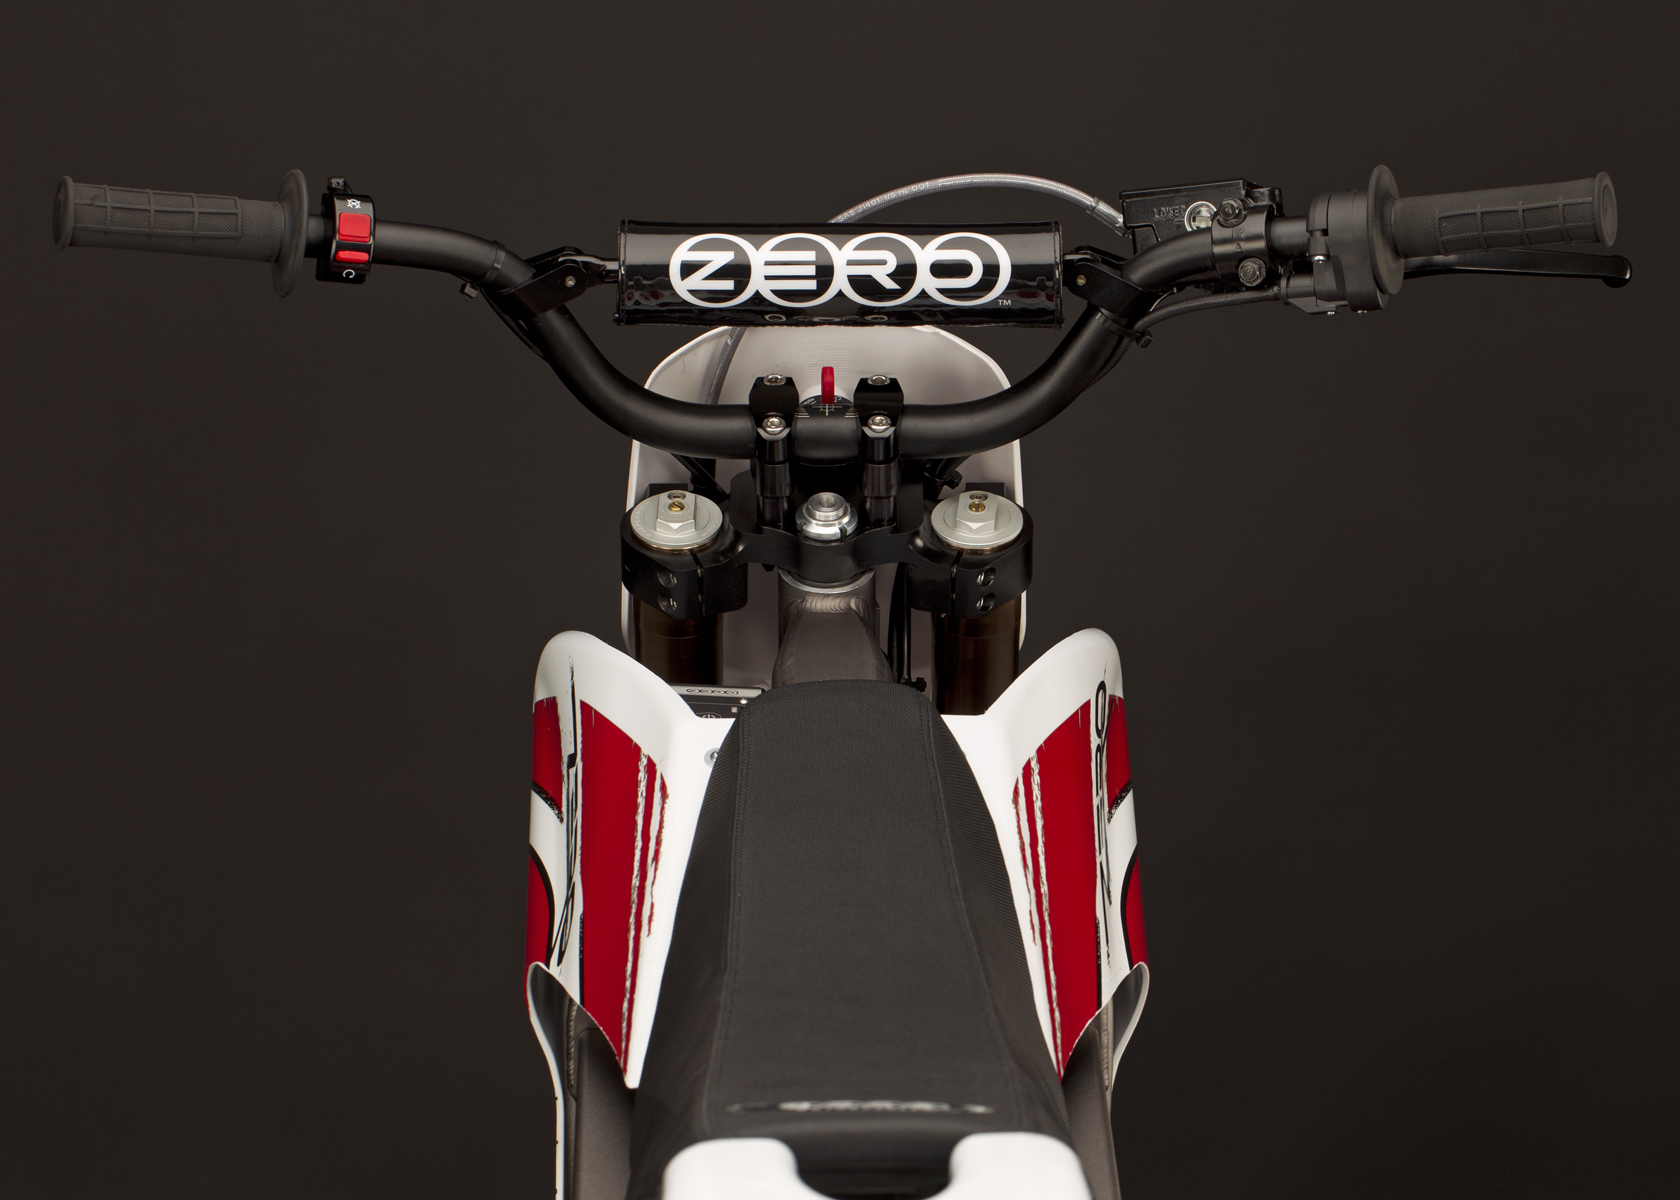 2011 Zero MX Electric Motorcycle: Handlebars